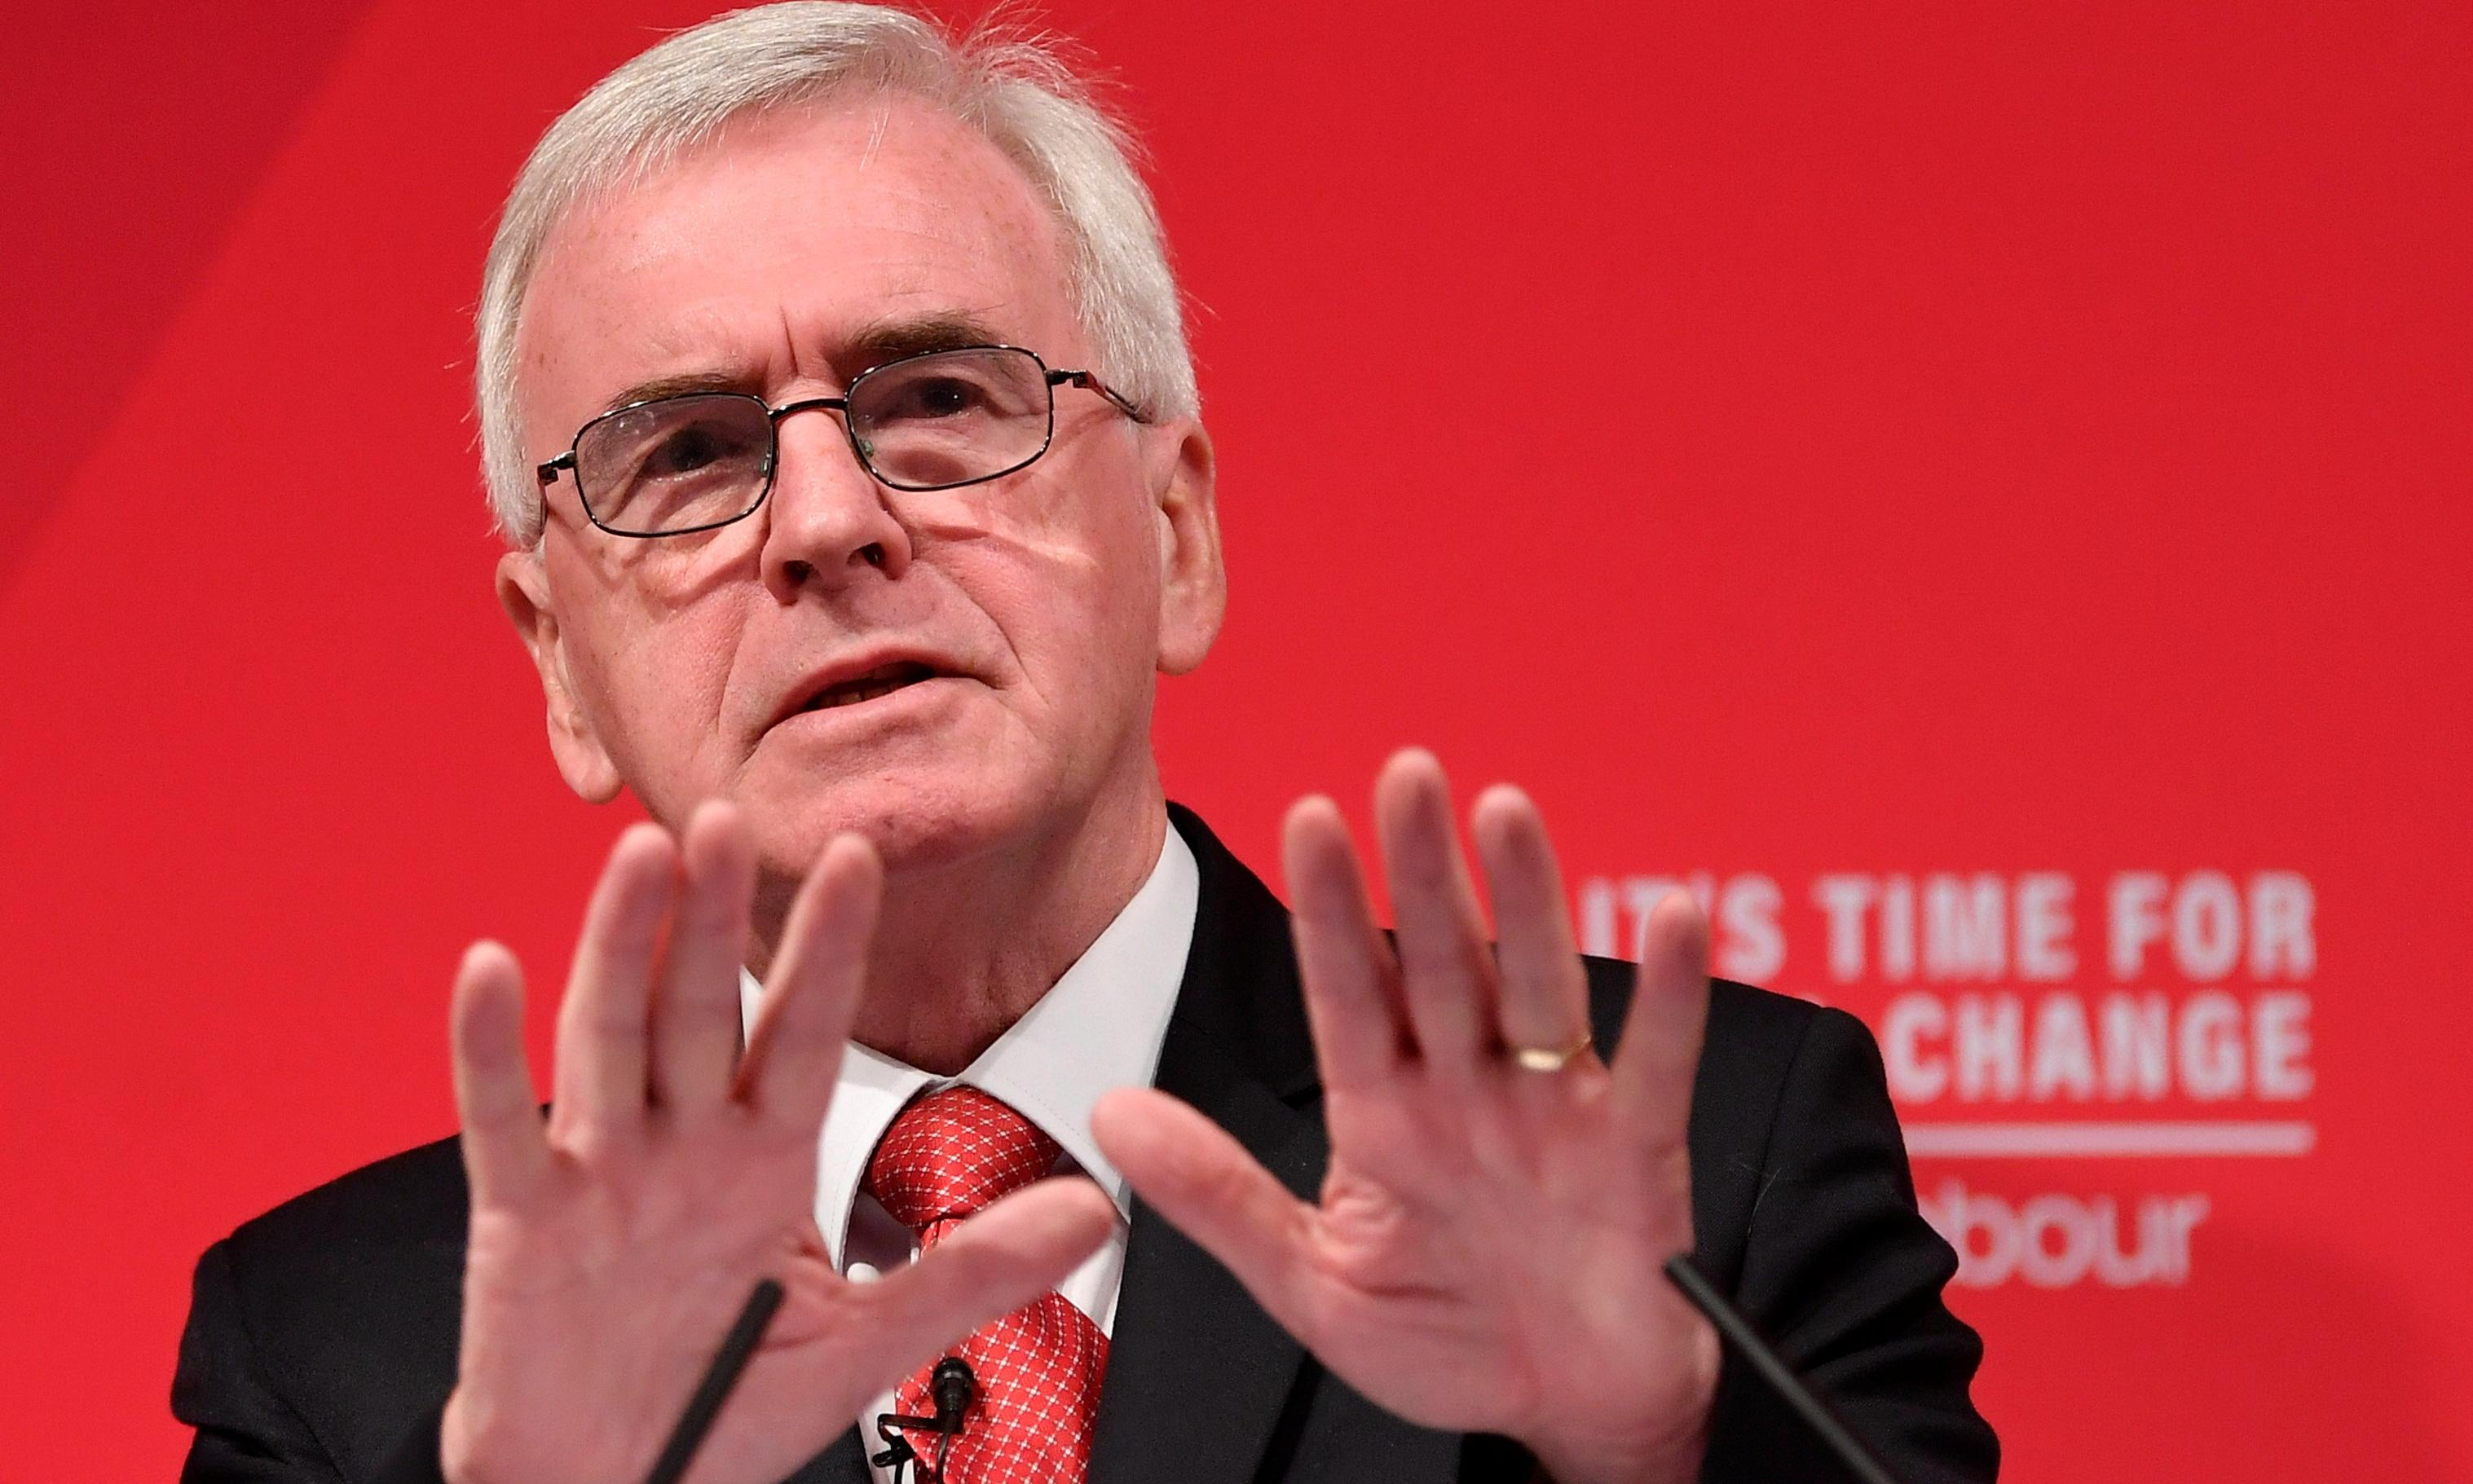 Labour urged to scale back plans to give workers stake in firms